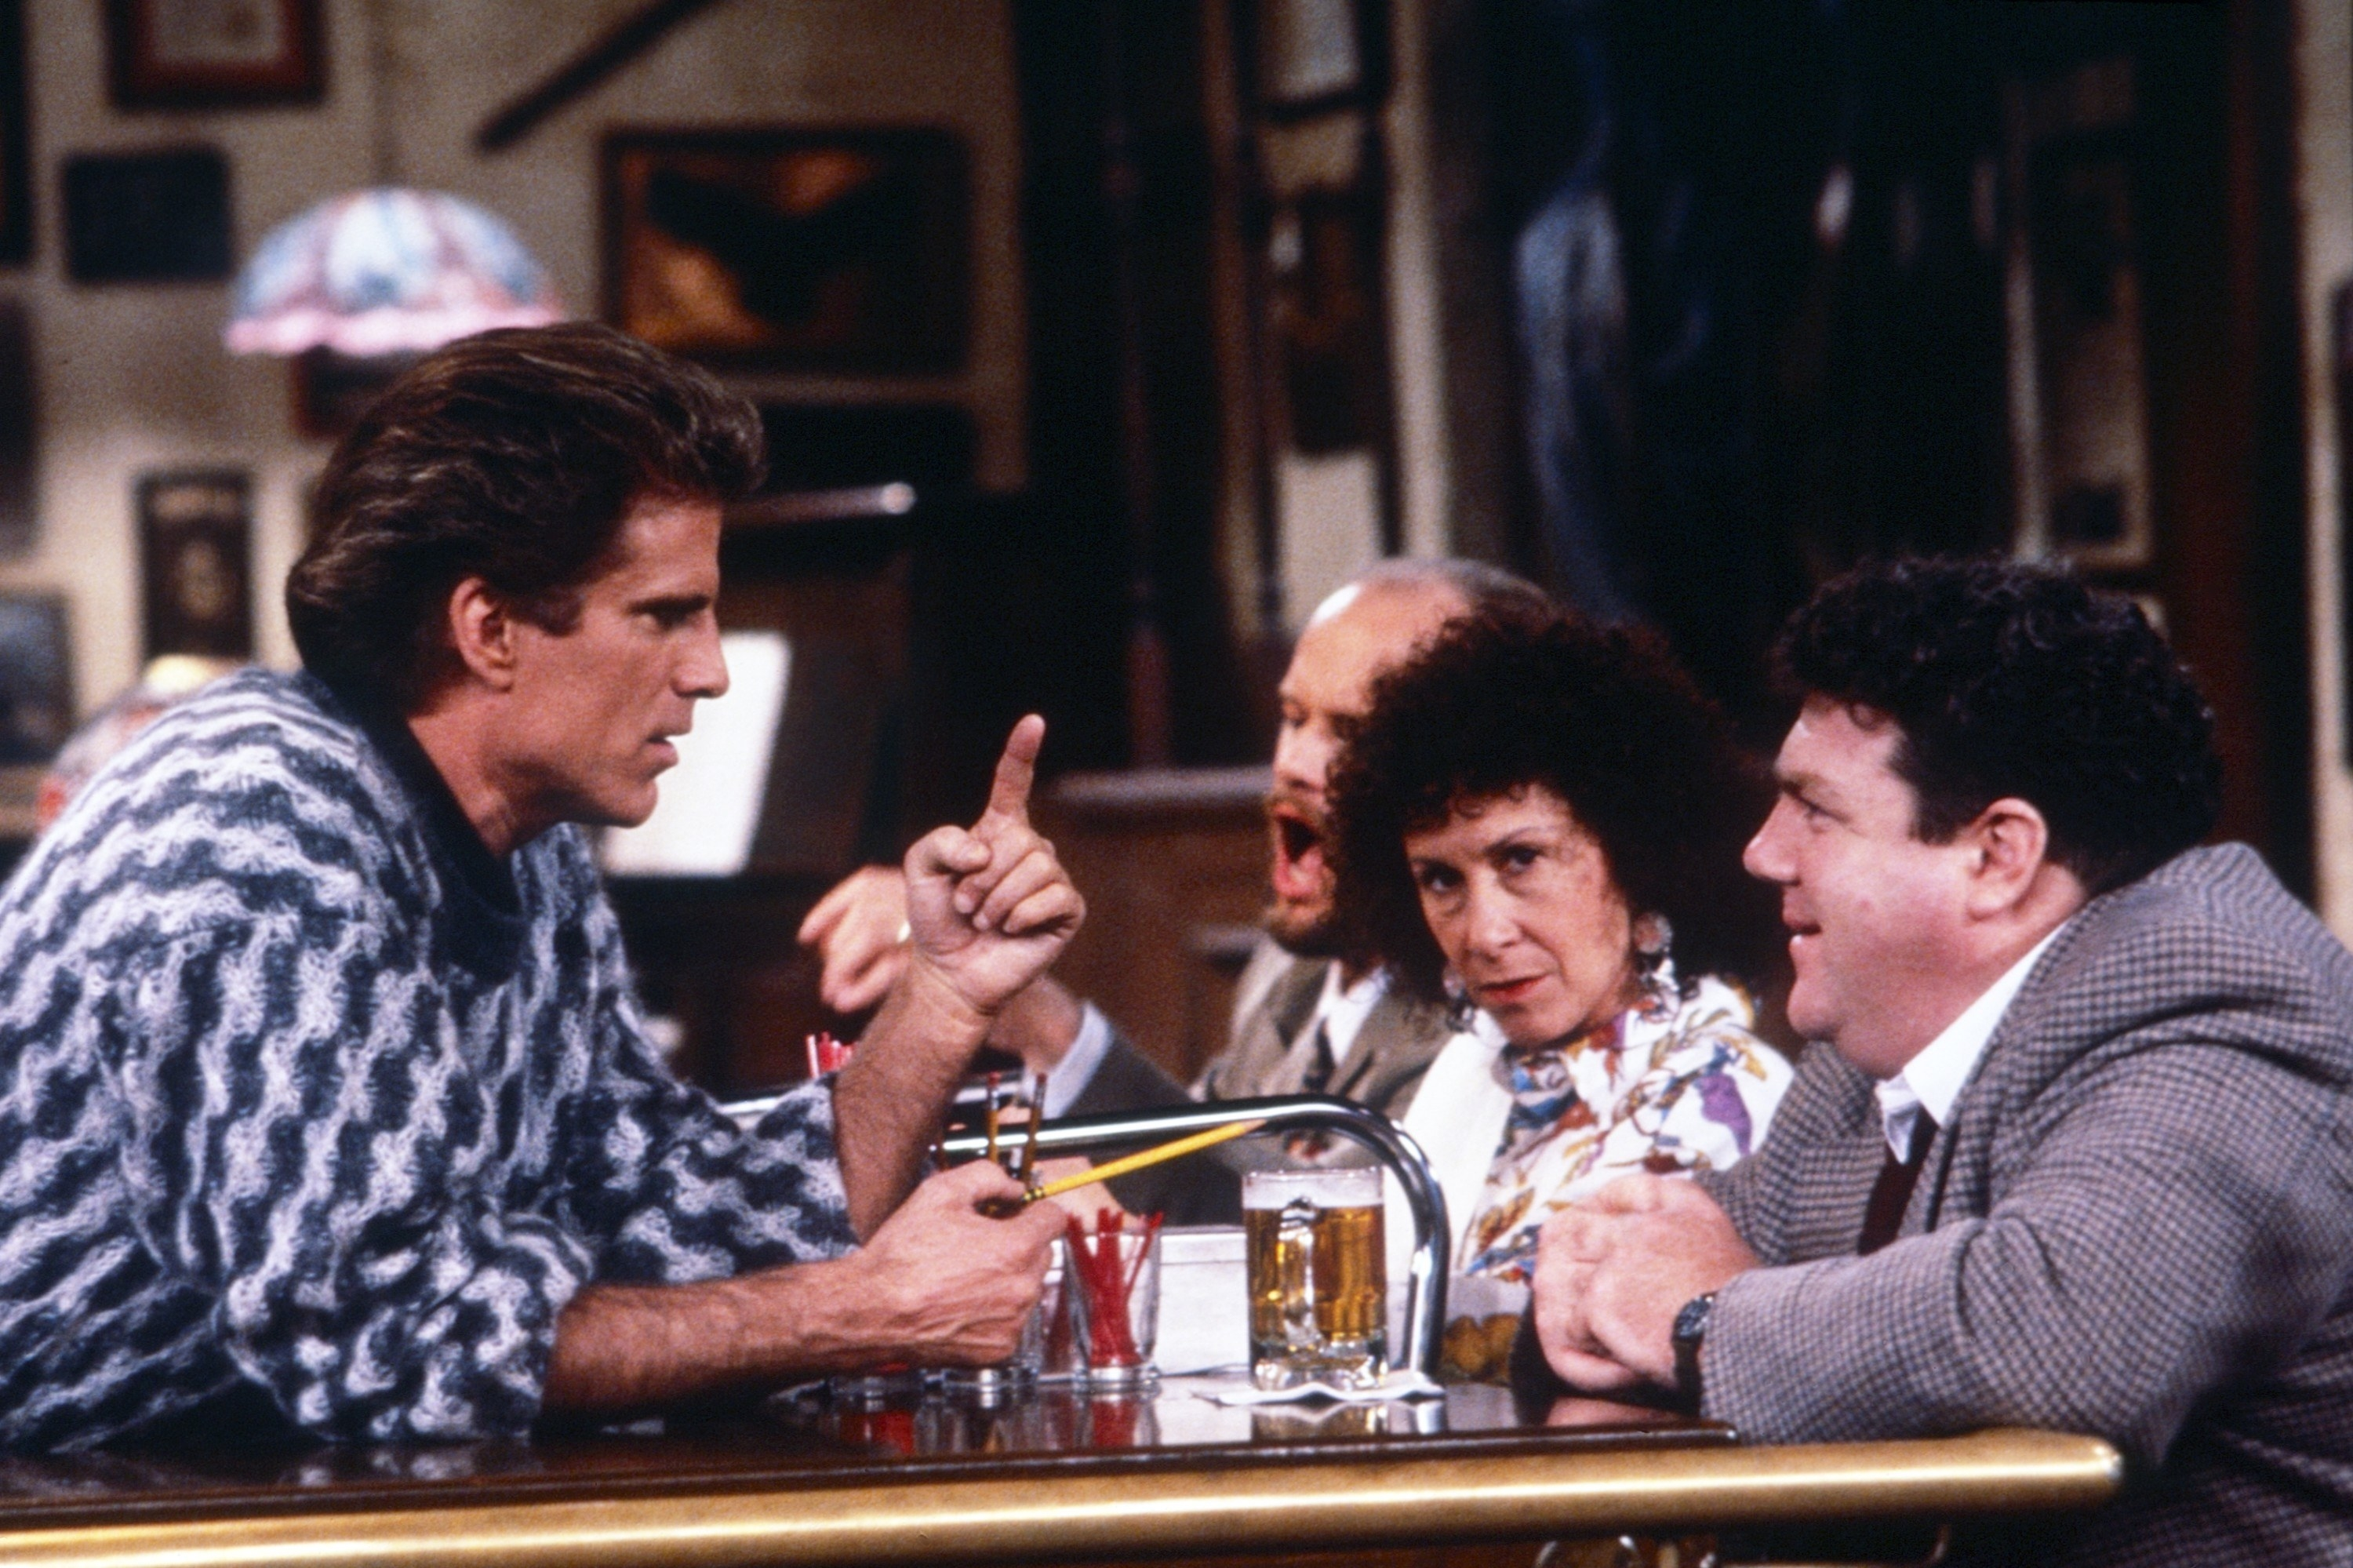 Ted Danson, Rhea Perlman, and George Wendt chatting at the bar